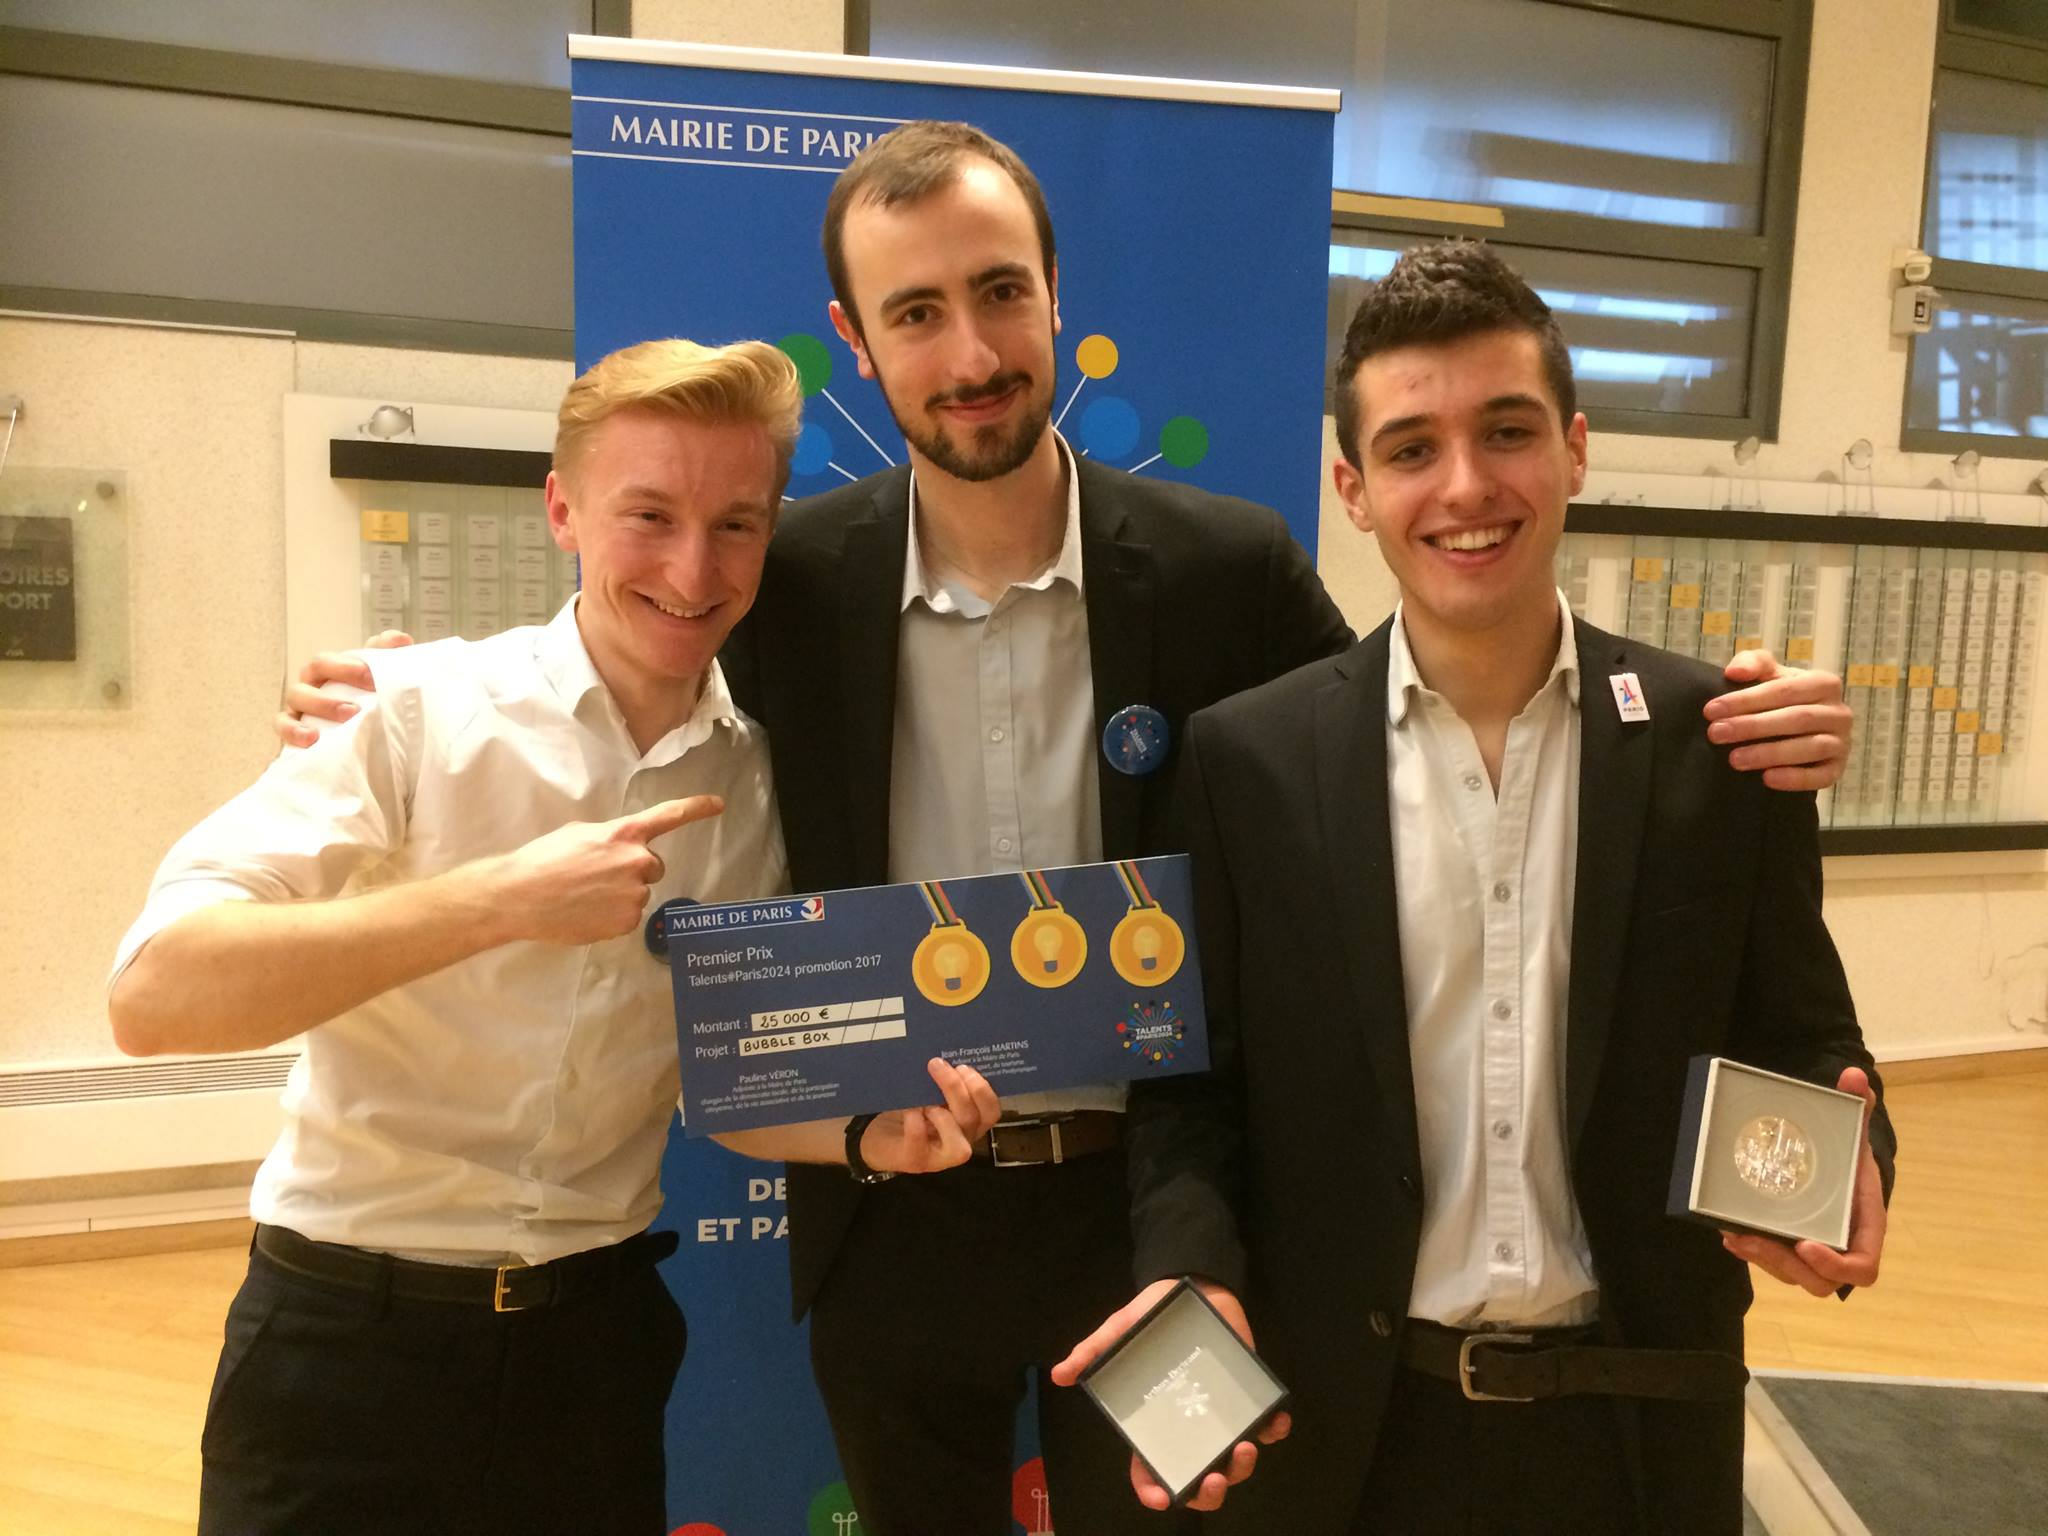 Louis Marty (MapX), Pierre Noro (BubbleBox) and Pietro Desideri (Allume Paris) at the awards ceremony for the Paris Talents 2024 Competition on January 10th, 2018.